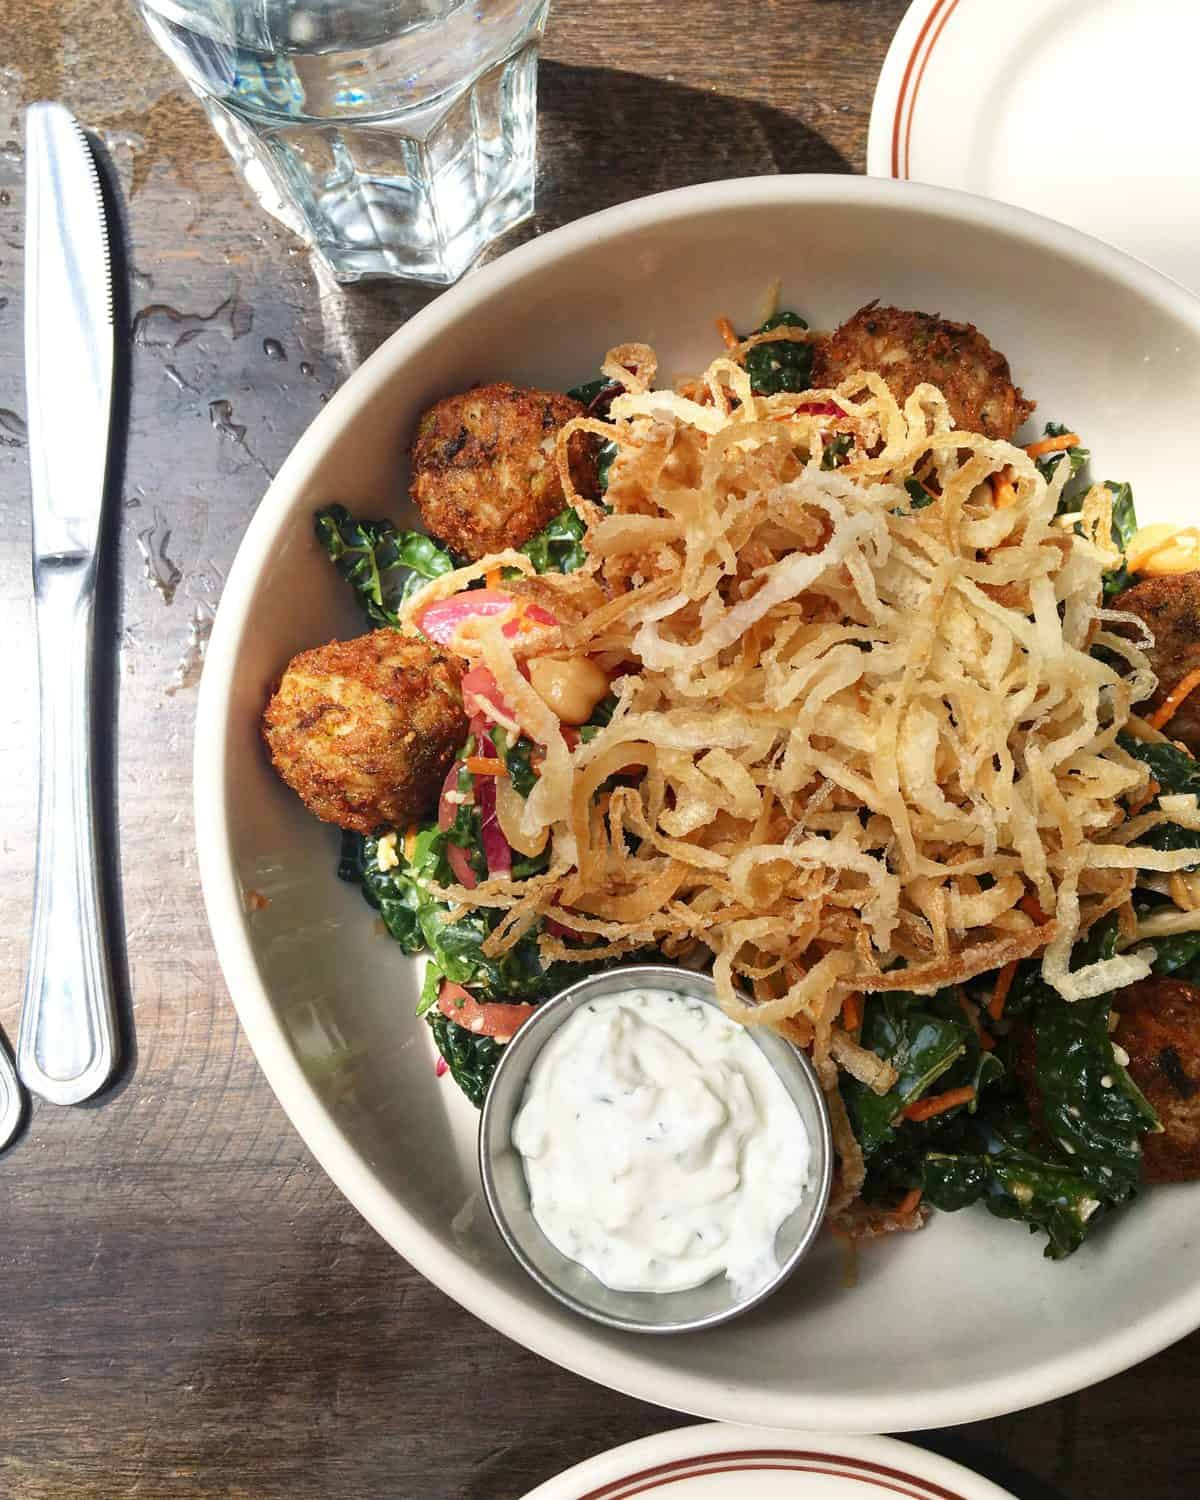 Delicious Kale Salad topped with crispy fried onions